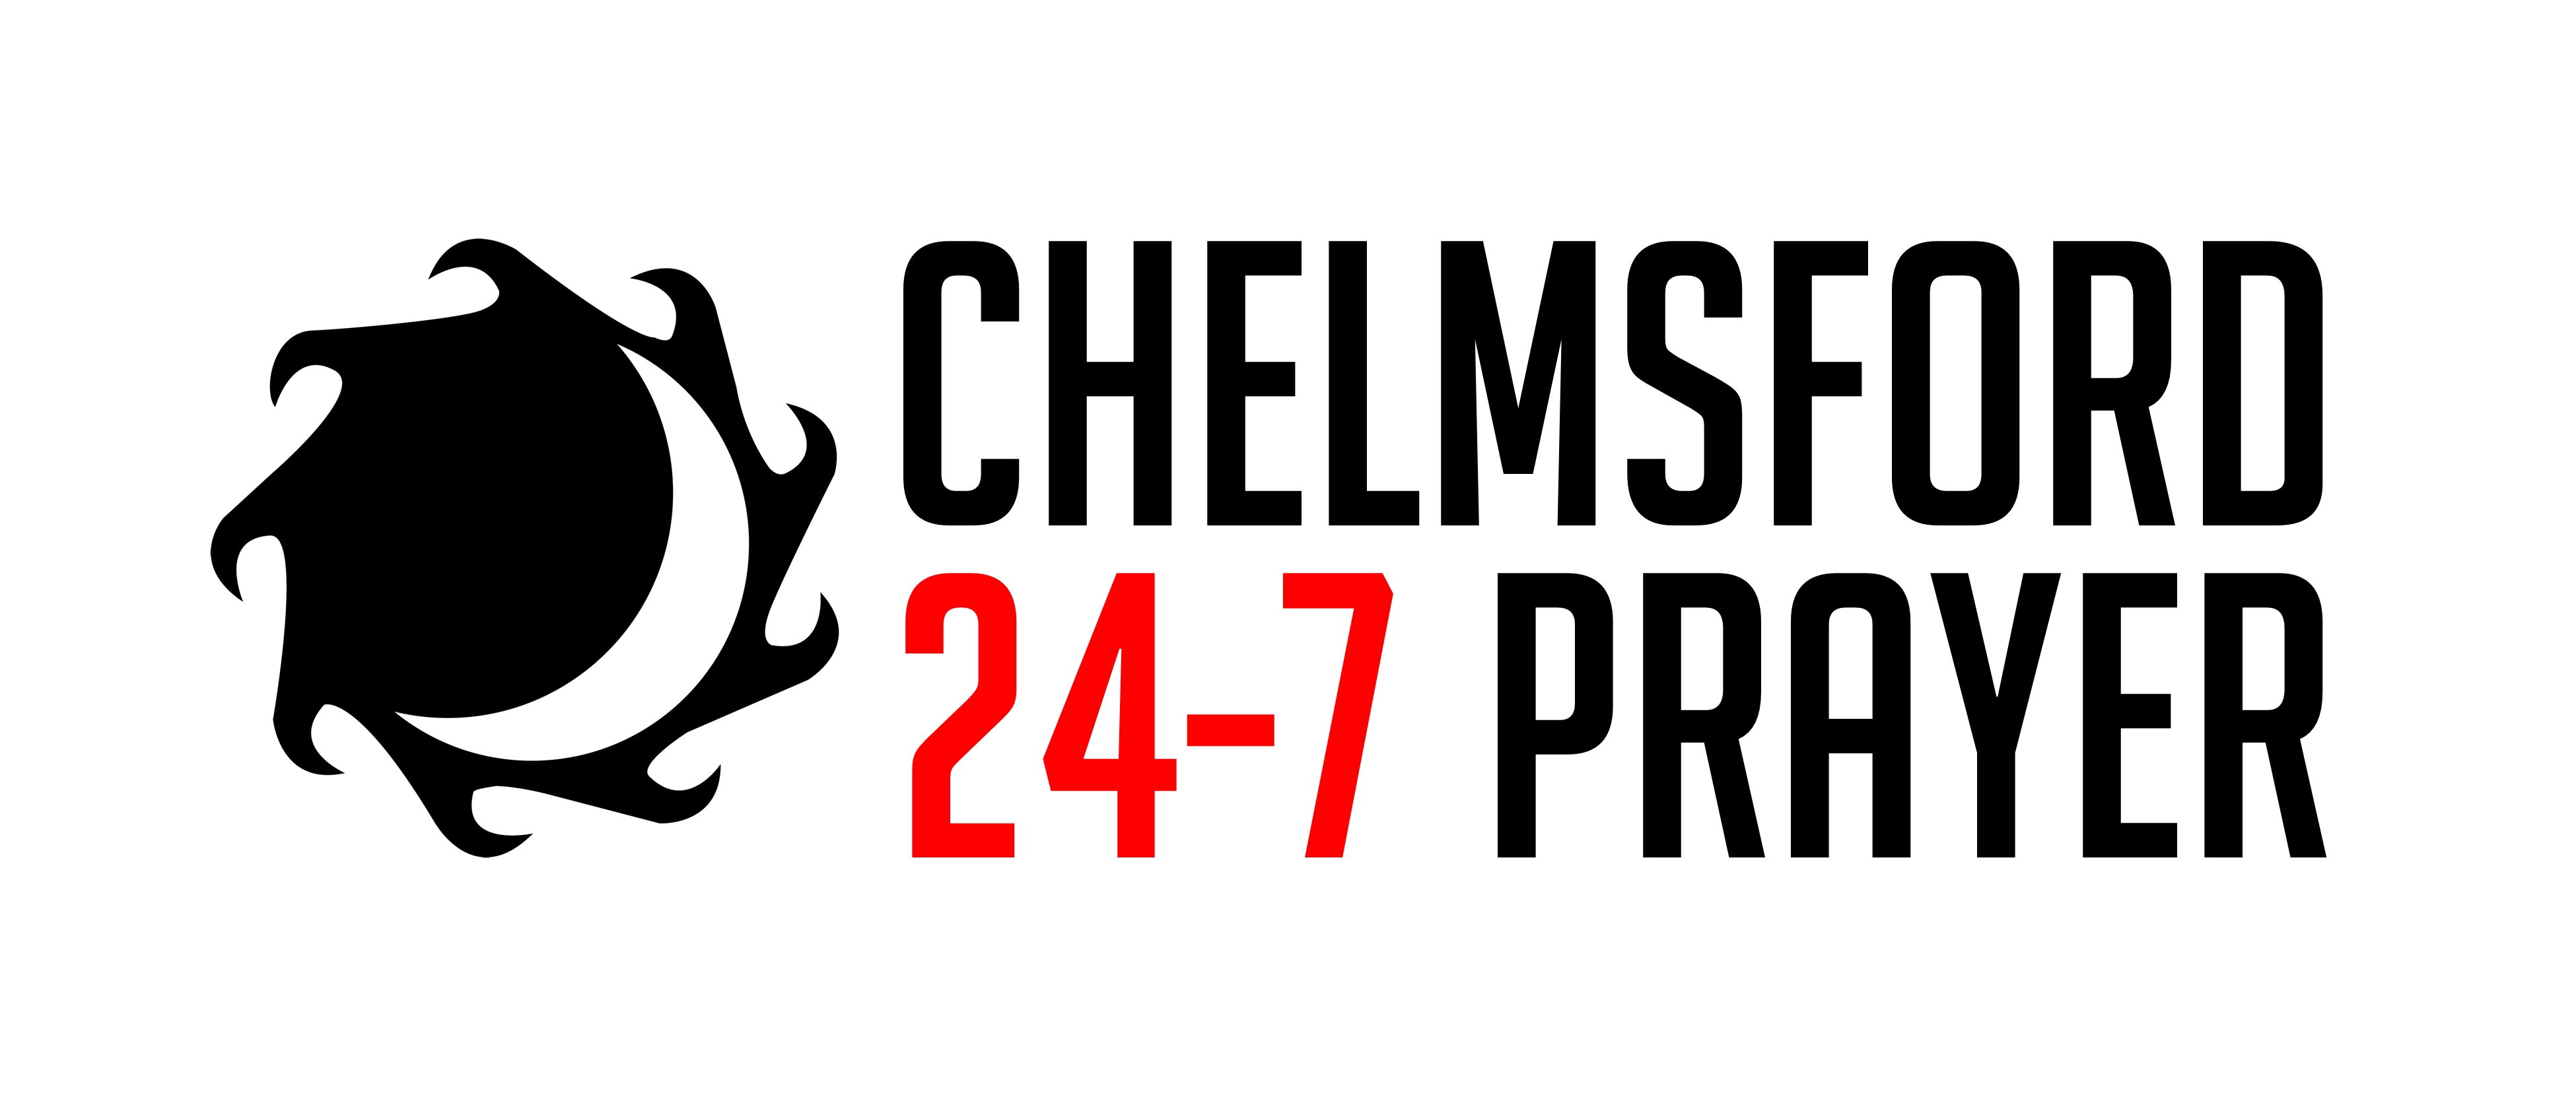 Chelmsford 24-7 Prayer logo